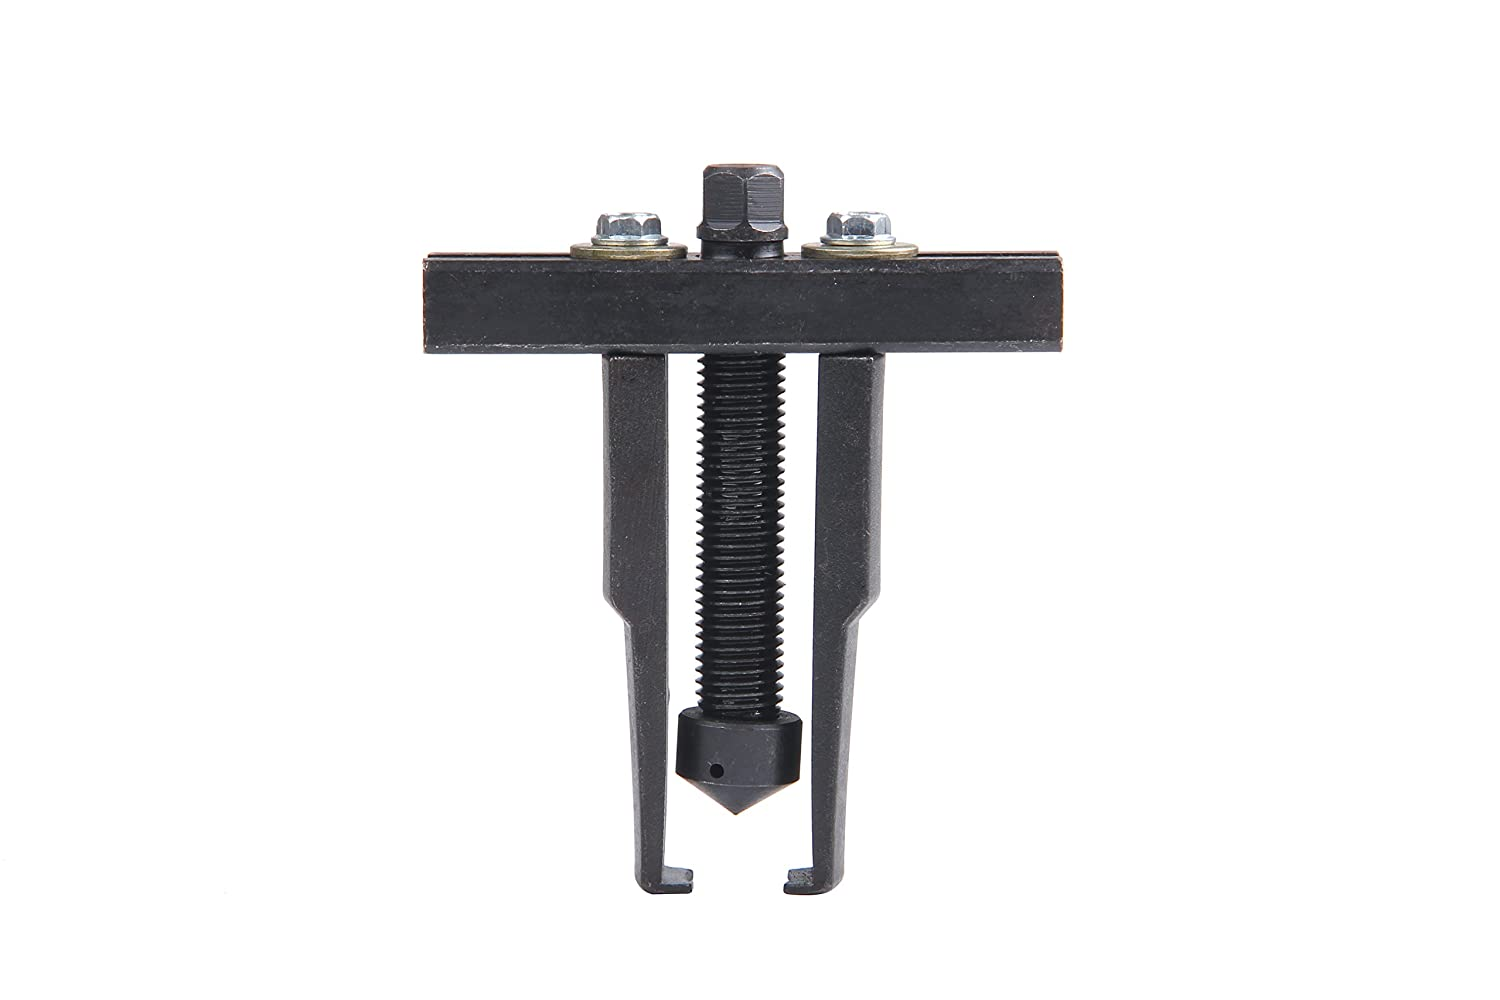 Shankly Two Jaws Harmonic Bearing Puller and Gear Puller